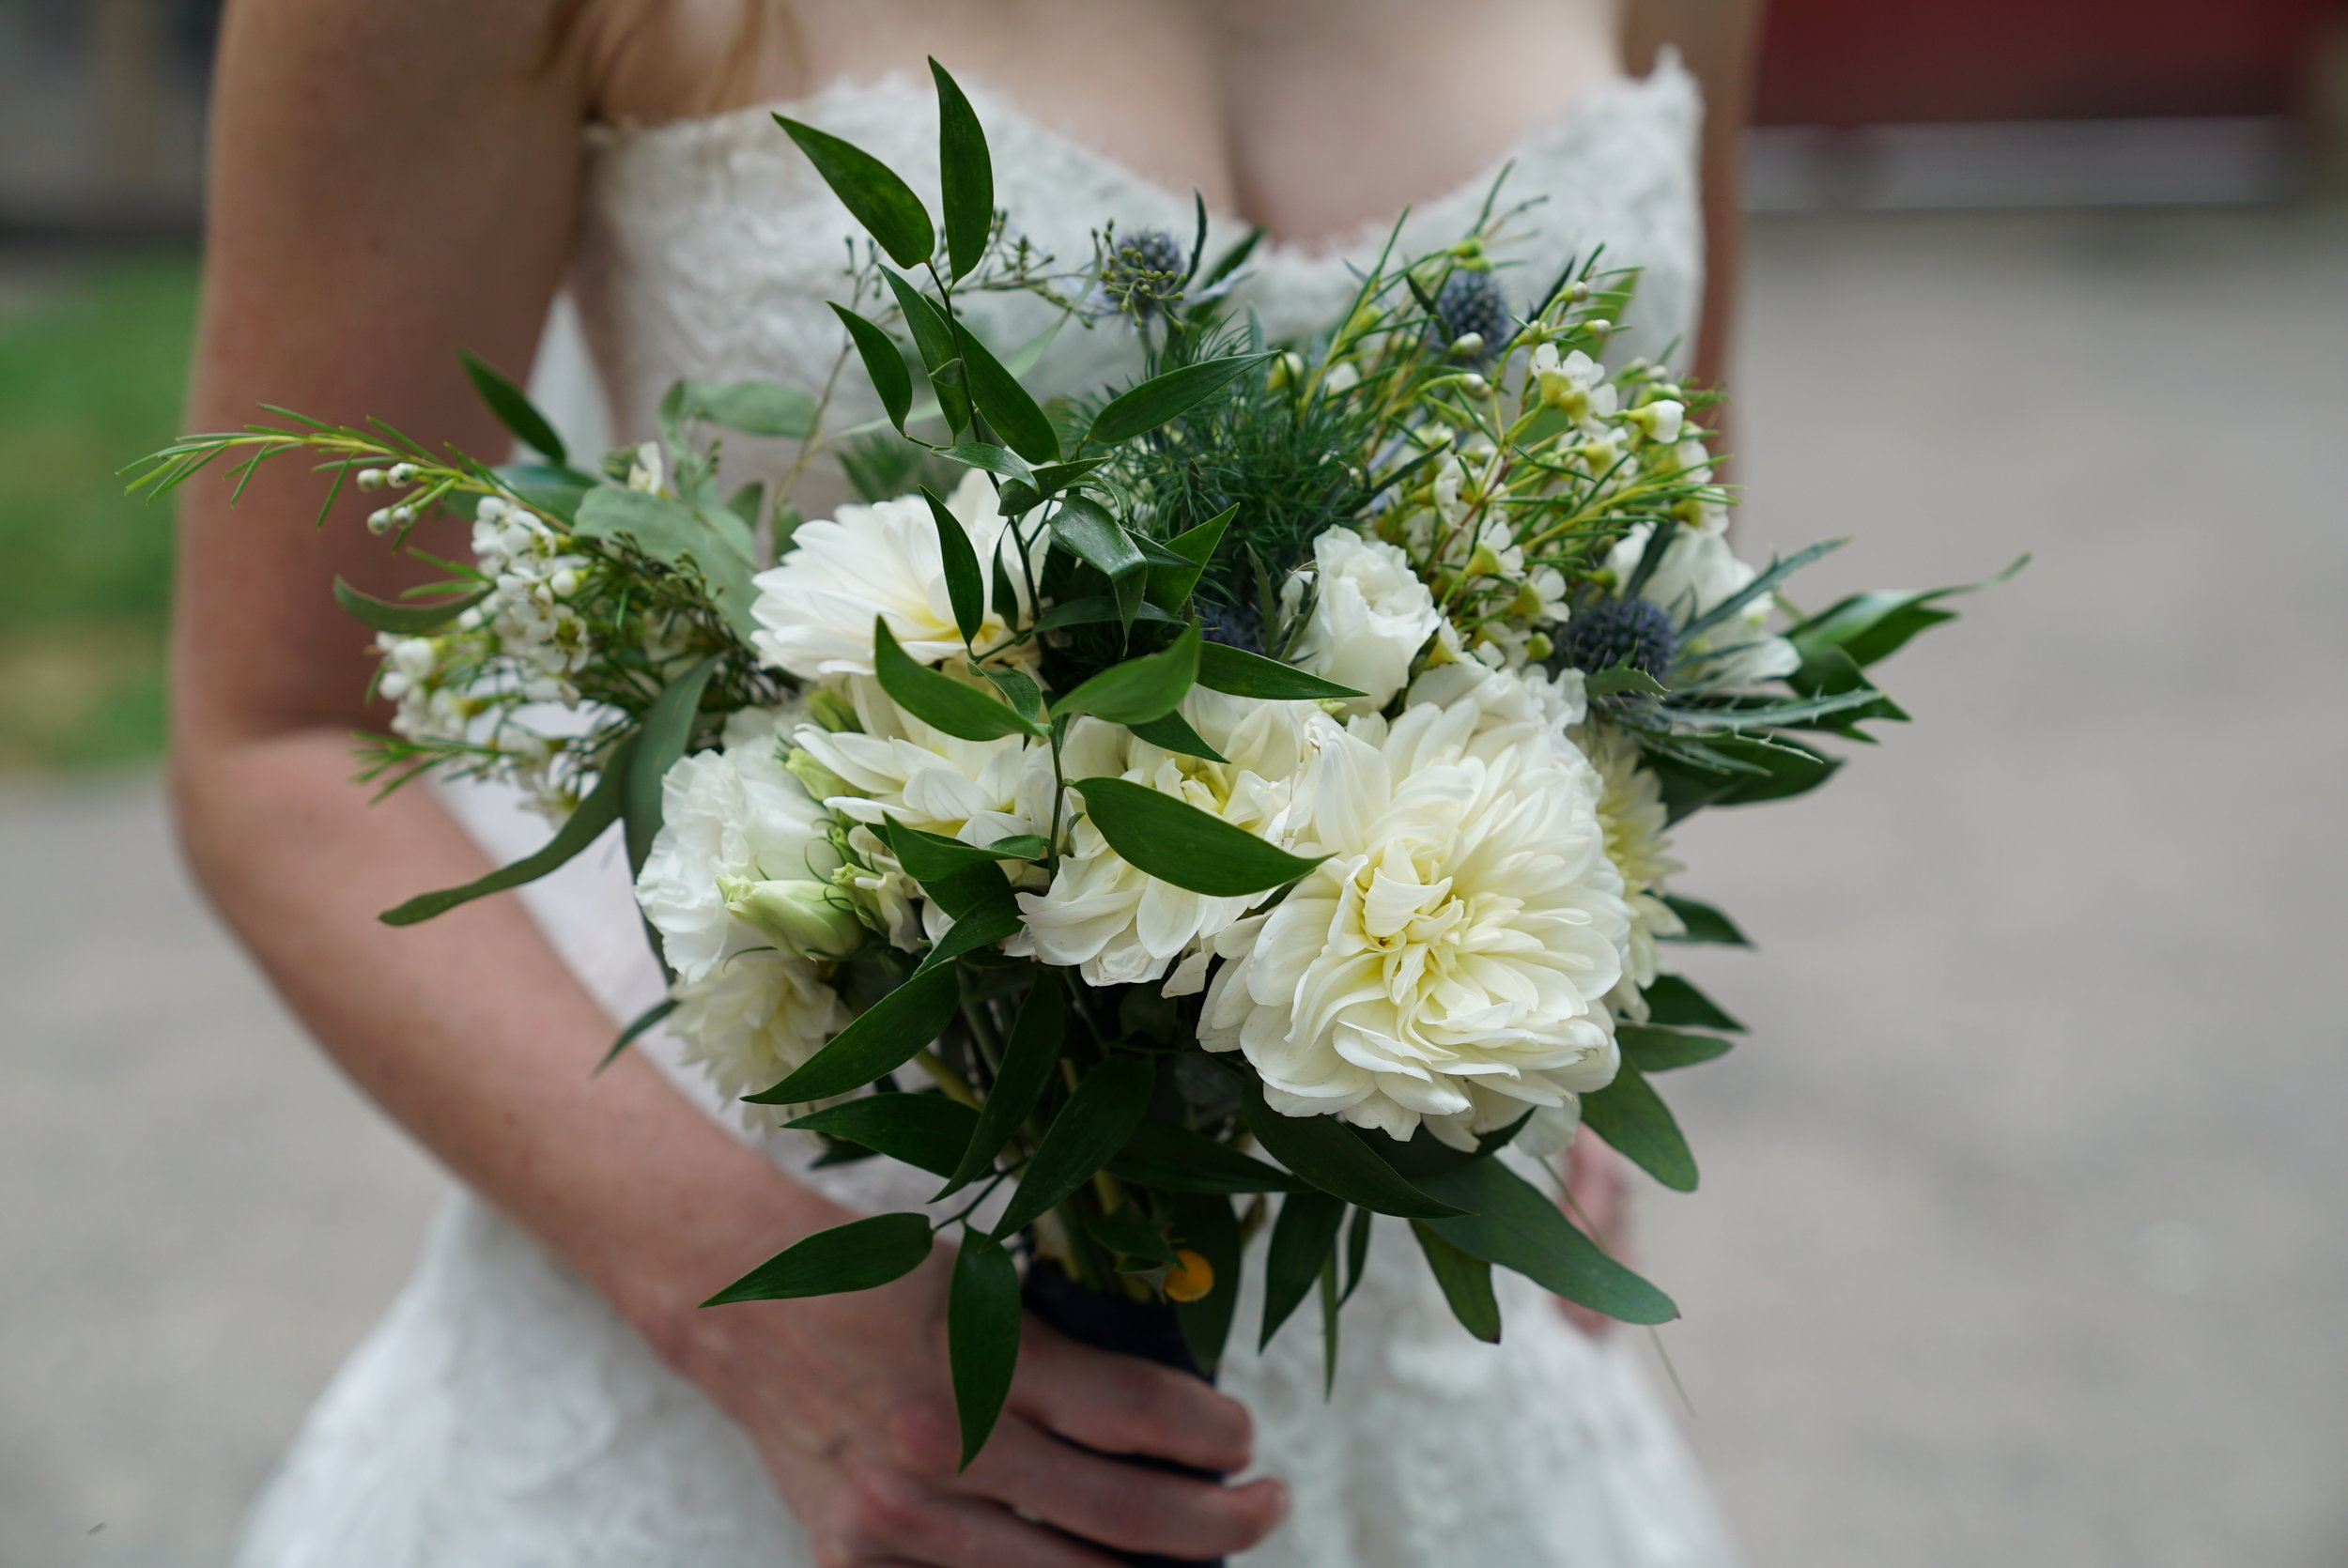 It's always hard to stop adding flowers into a bouquet, but with the bride being petite I wanted a nicely proportioned grouping. Again, Italian Ruscus shines as the dark green, with some Seeded Eucalyptus to lighten it up. I wish there were more reasons in life to carry beautiful bouquets around!!